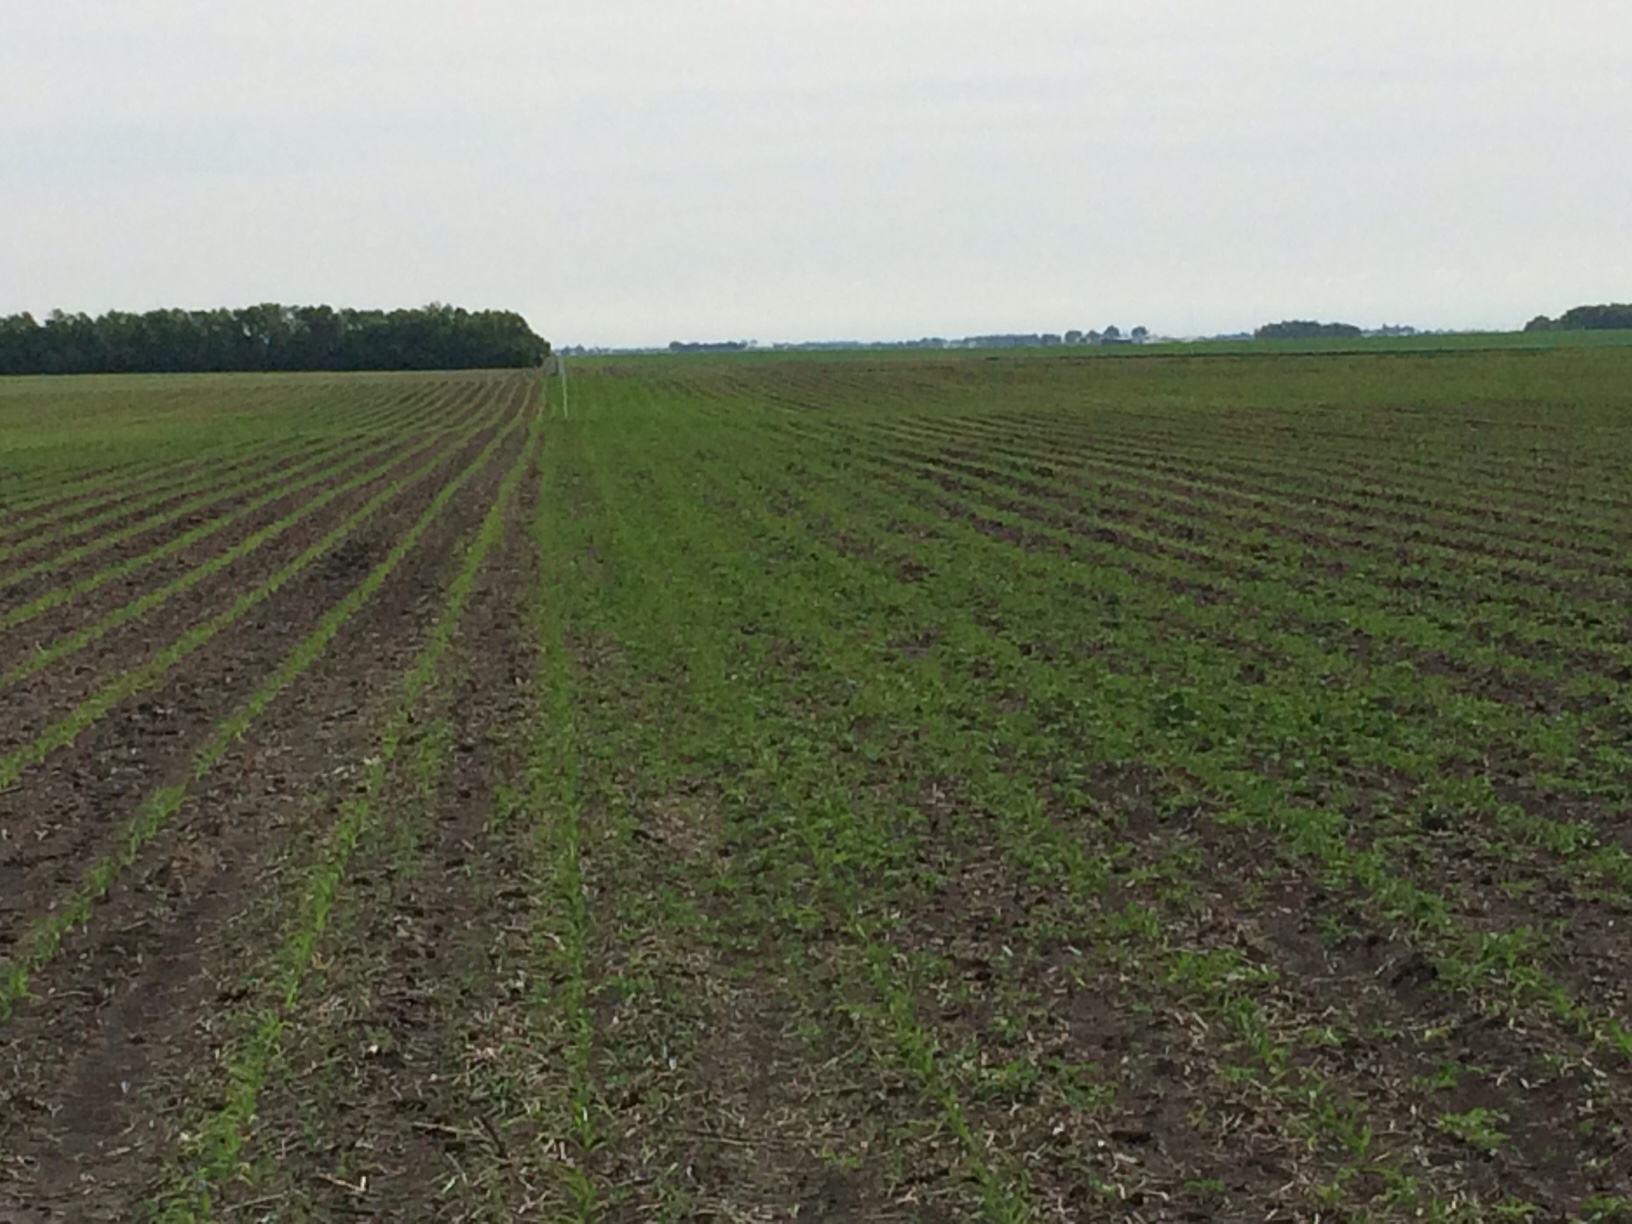 An agronomic image showing a clean vs. giant ragweed-filled field.